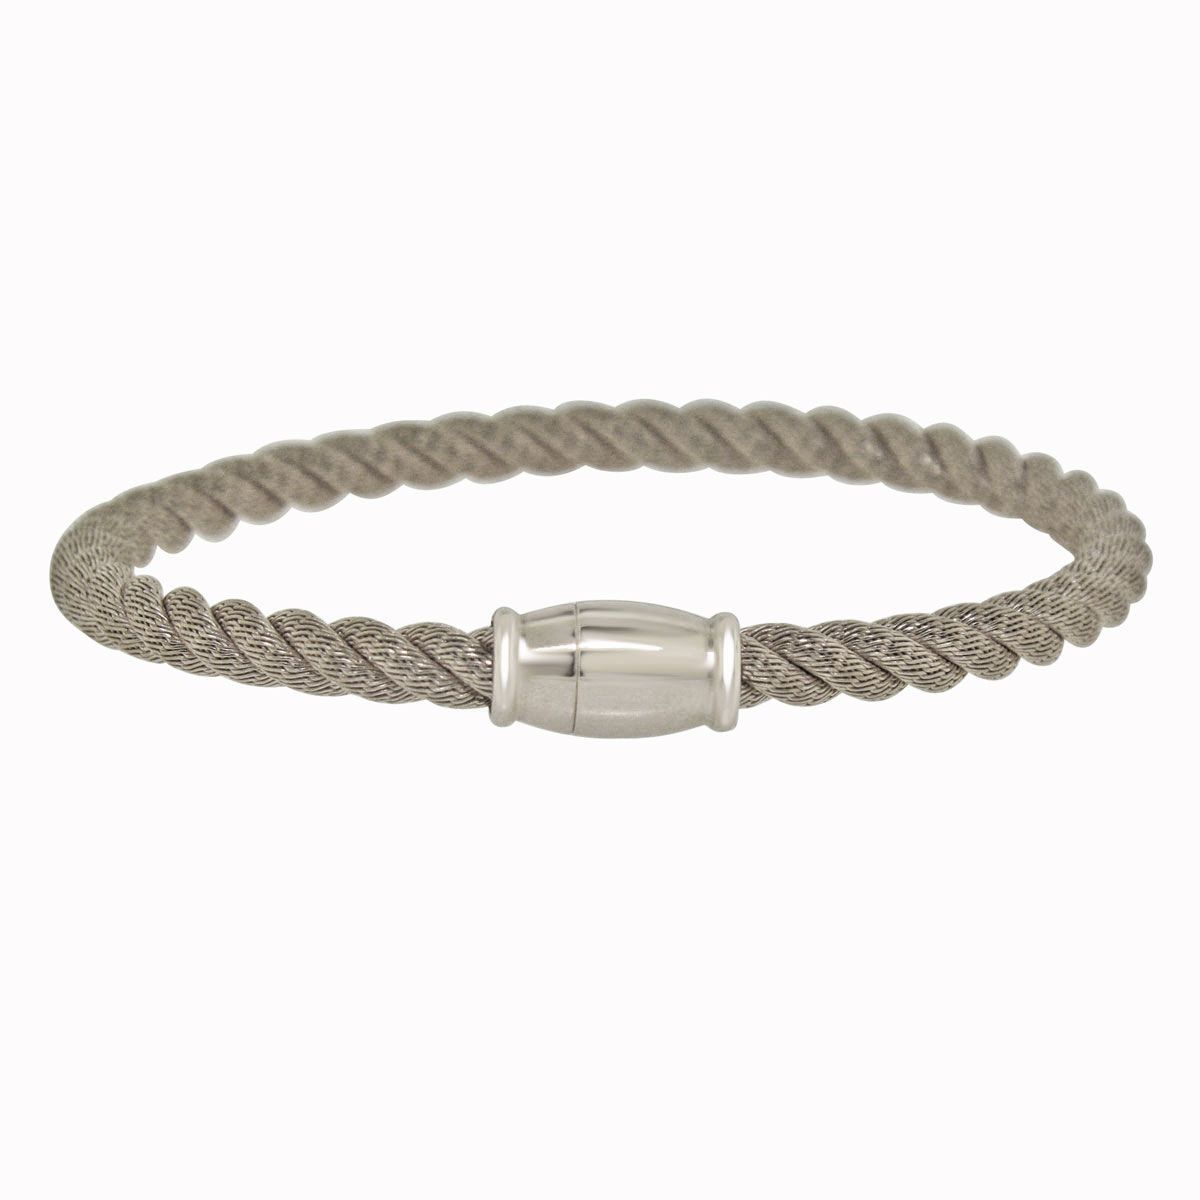 Womenus sterling silver italian twisted cable bangle bracelet